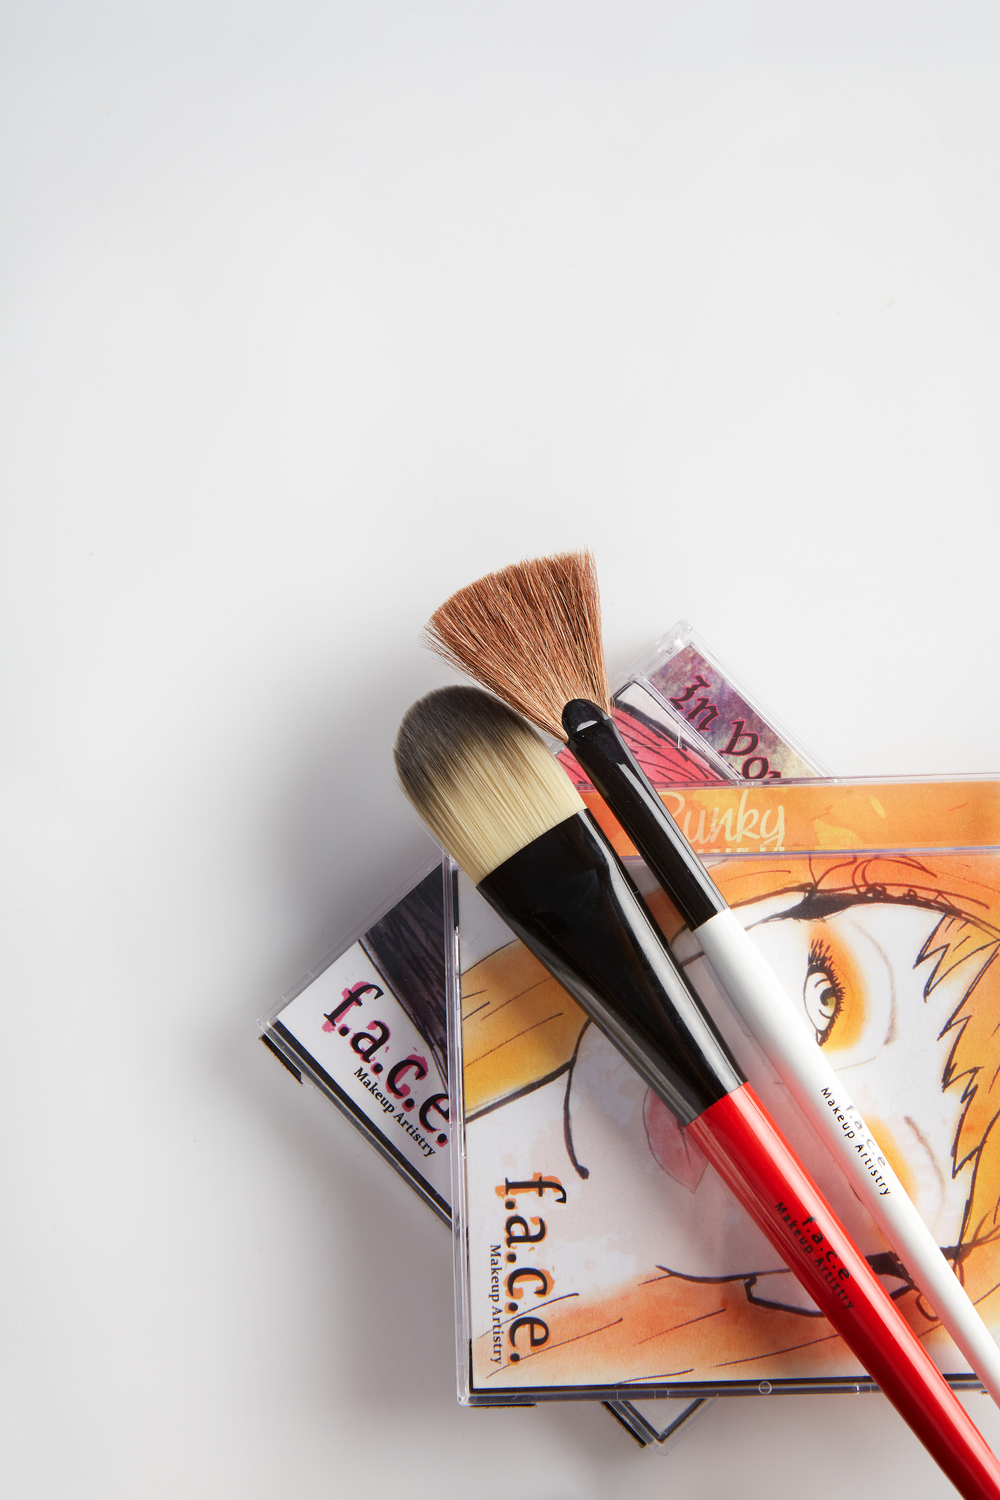 Face Makeup Artistry - Product Photography - Brad Rankin Studio